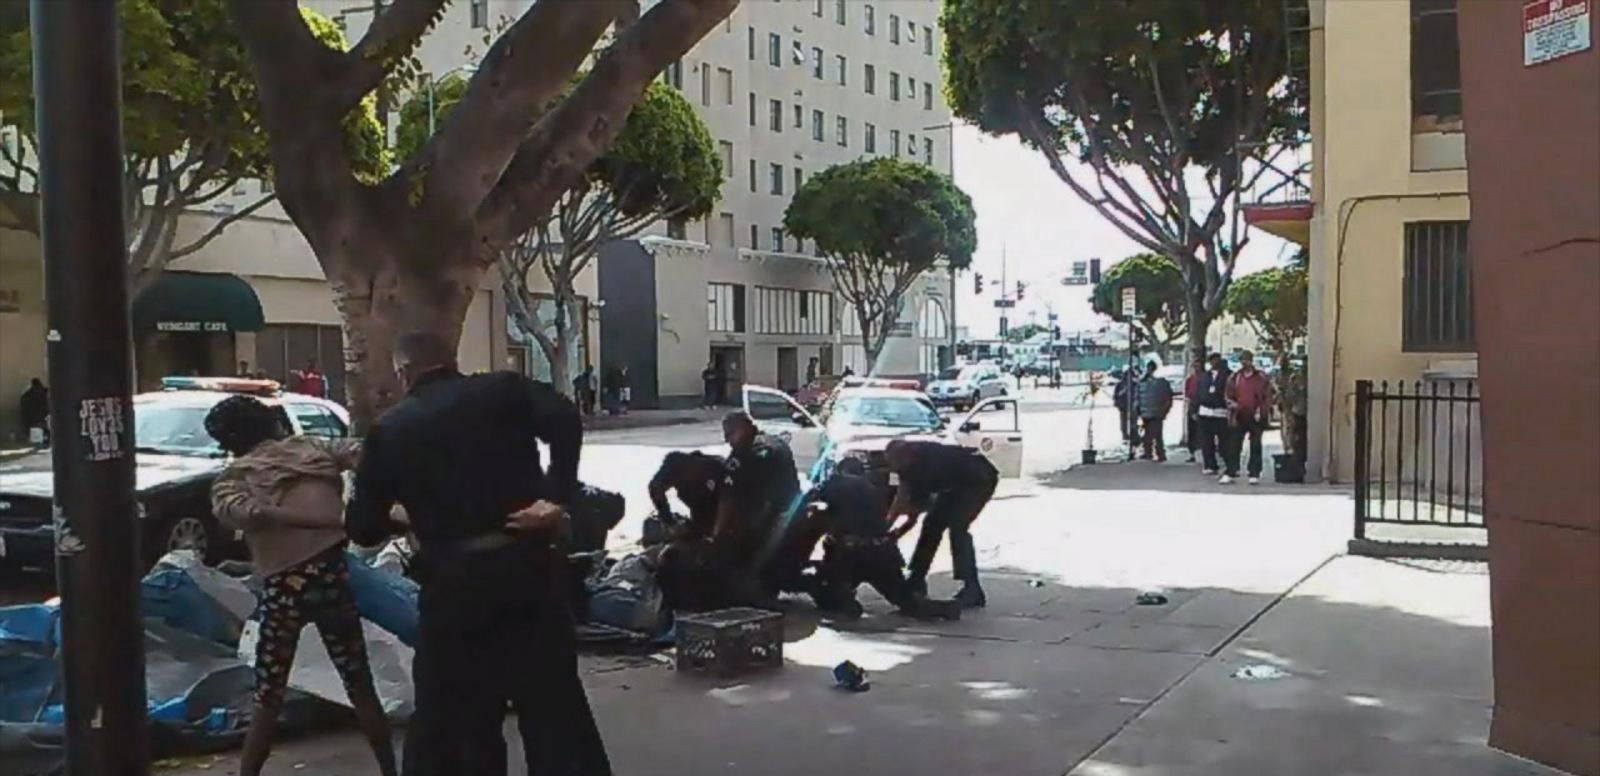 VIDEO: LAPD Addresses Officer-Involved Shooting That Was Videotaped